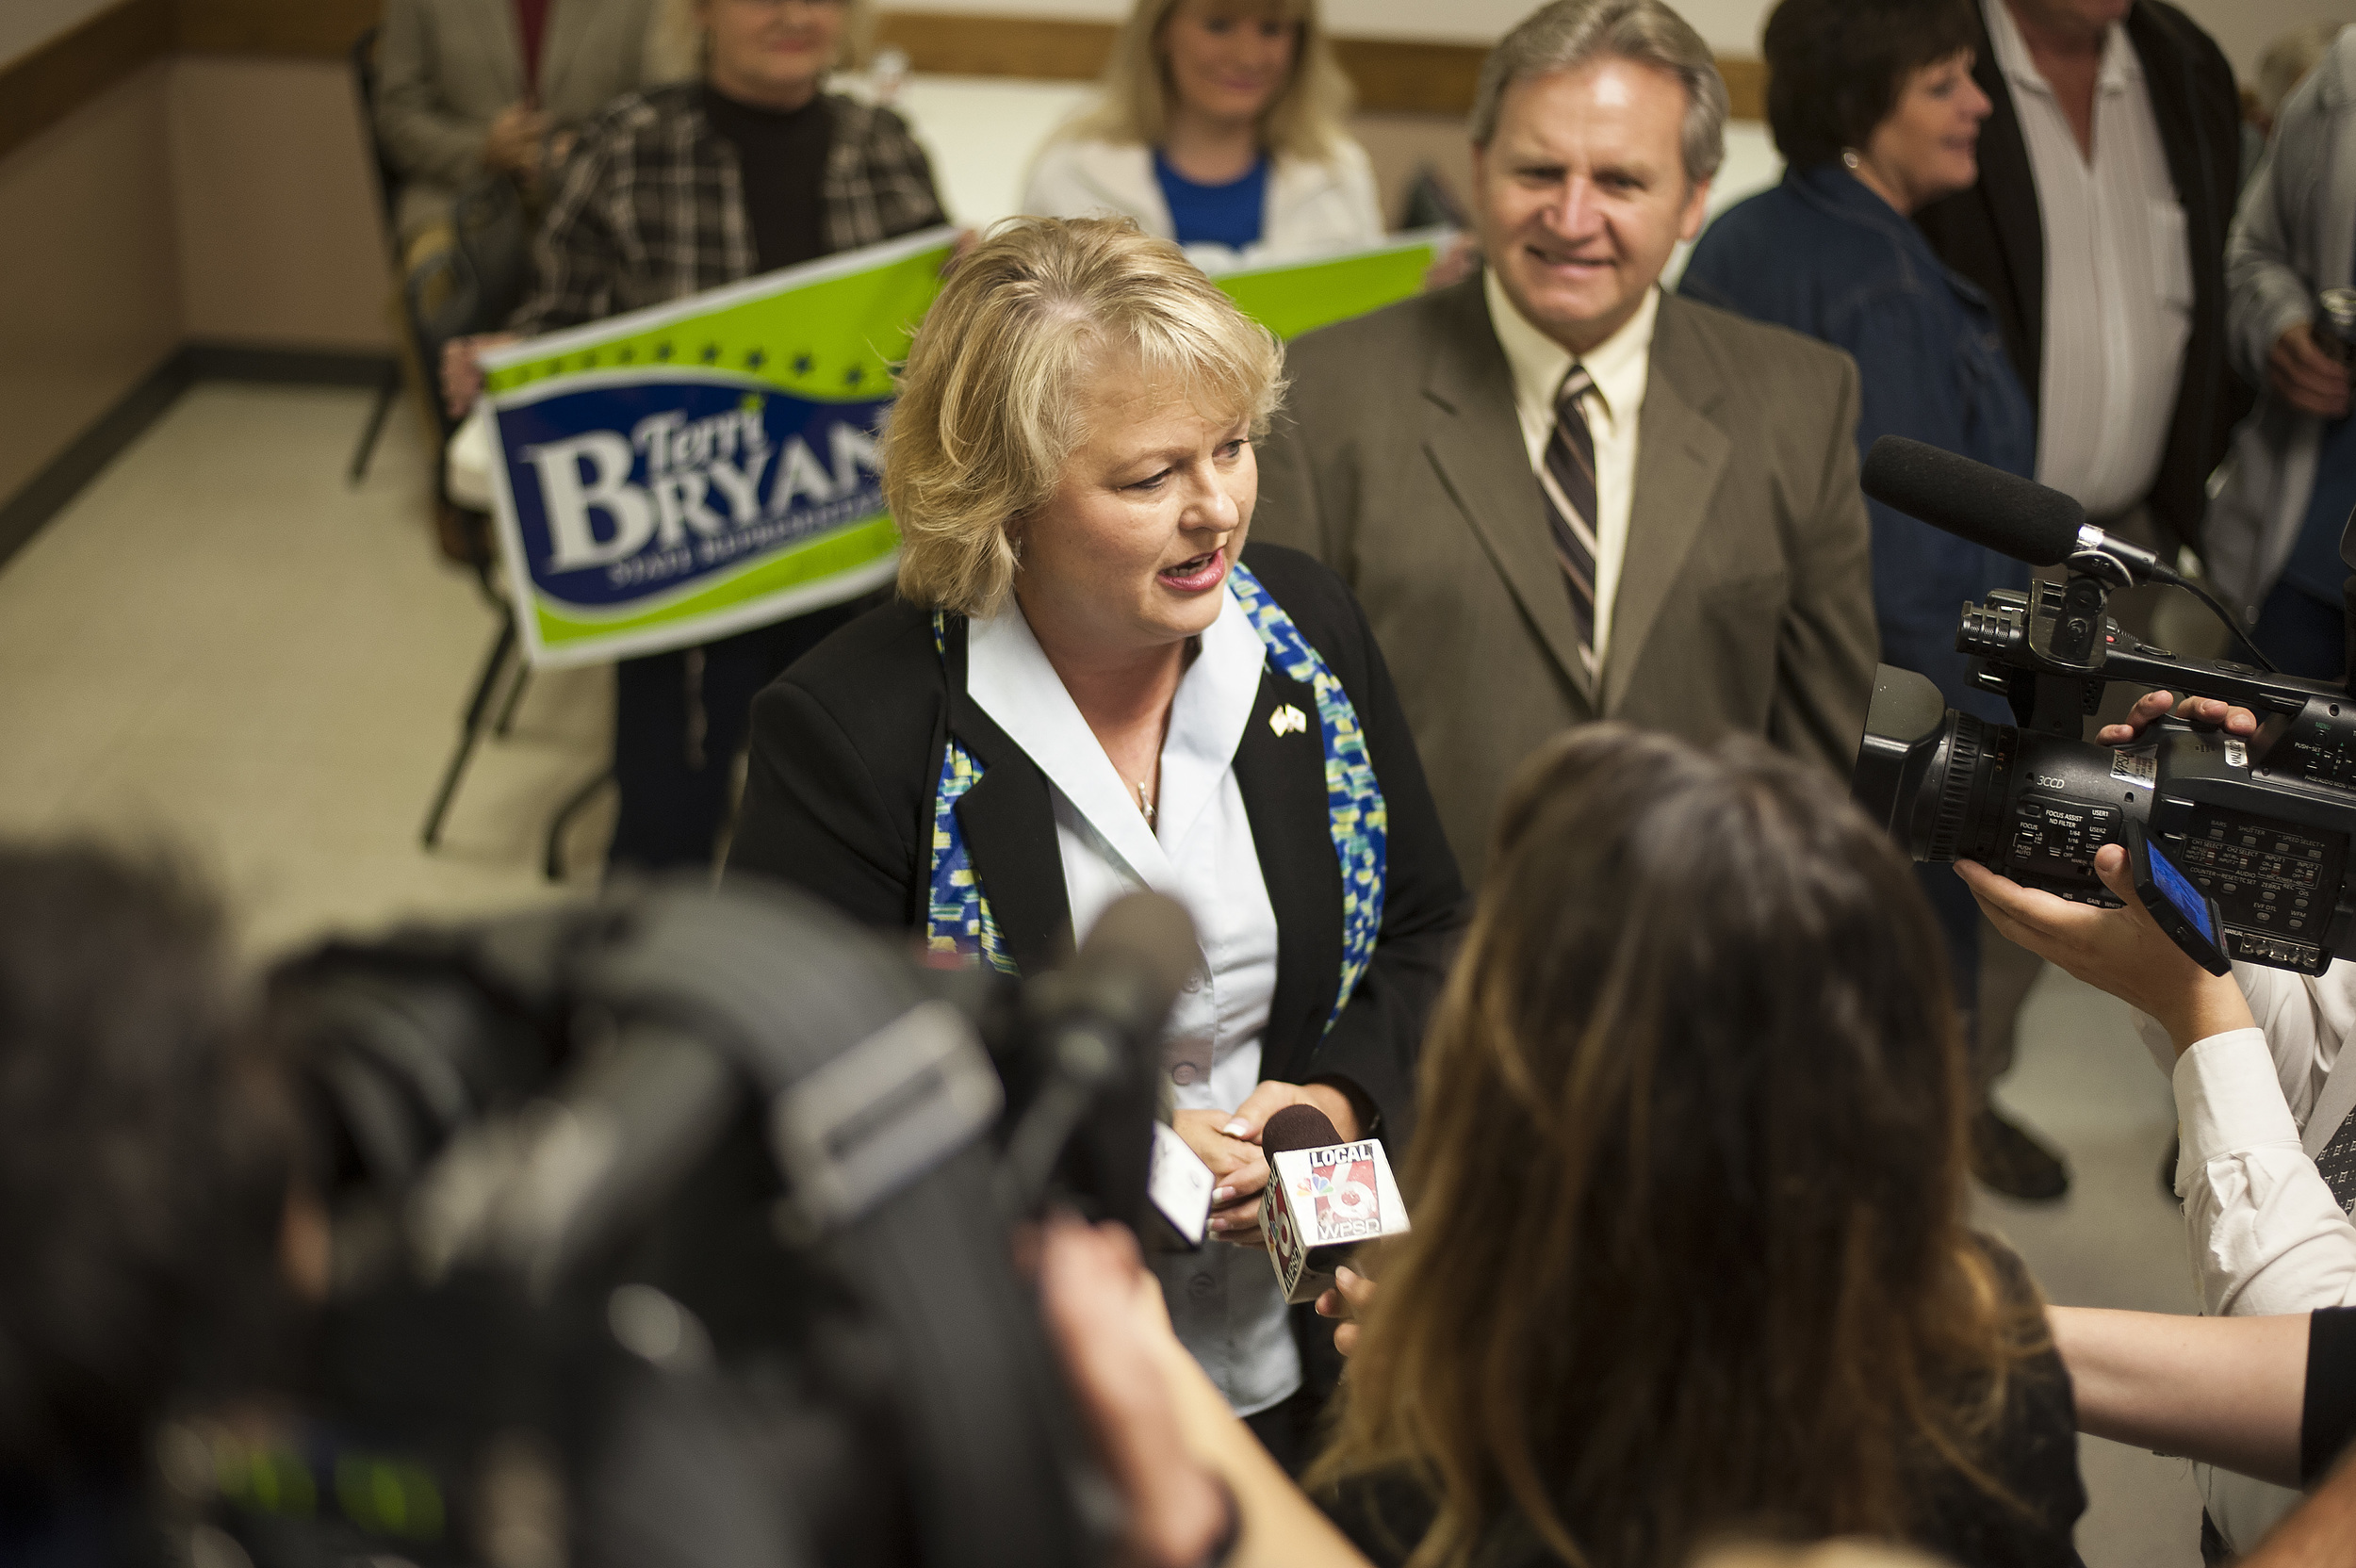 Terri Bryant (R-Murphysboro) answers questions from local media before delivering her victory speech.